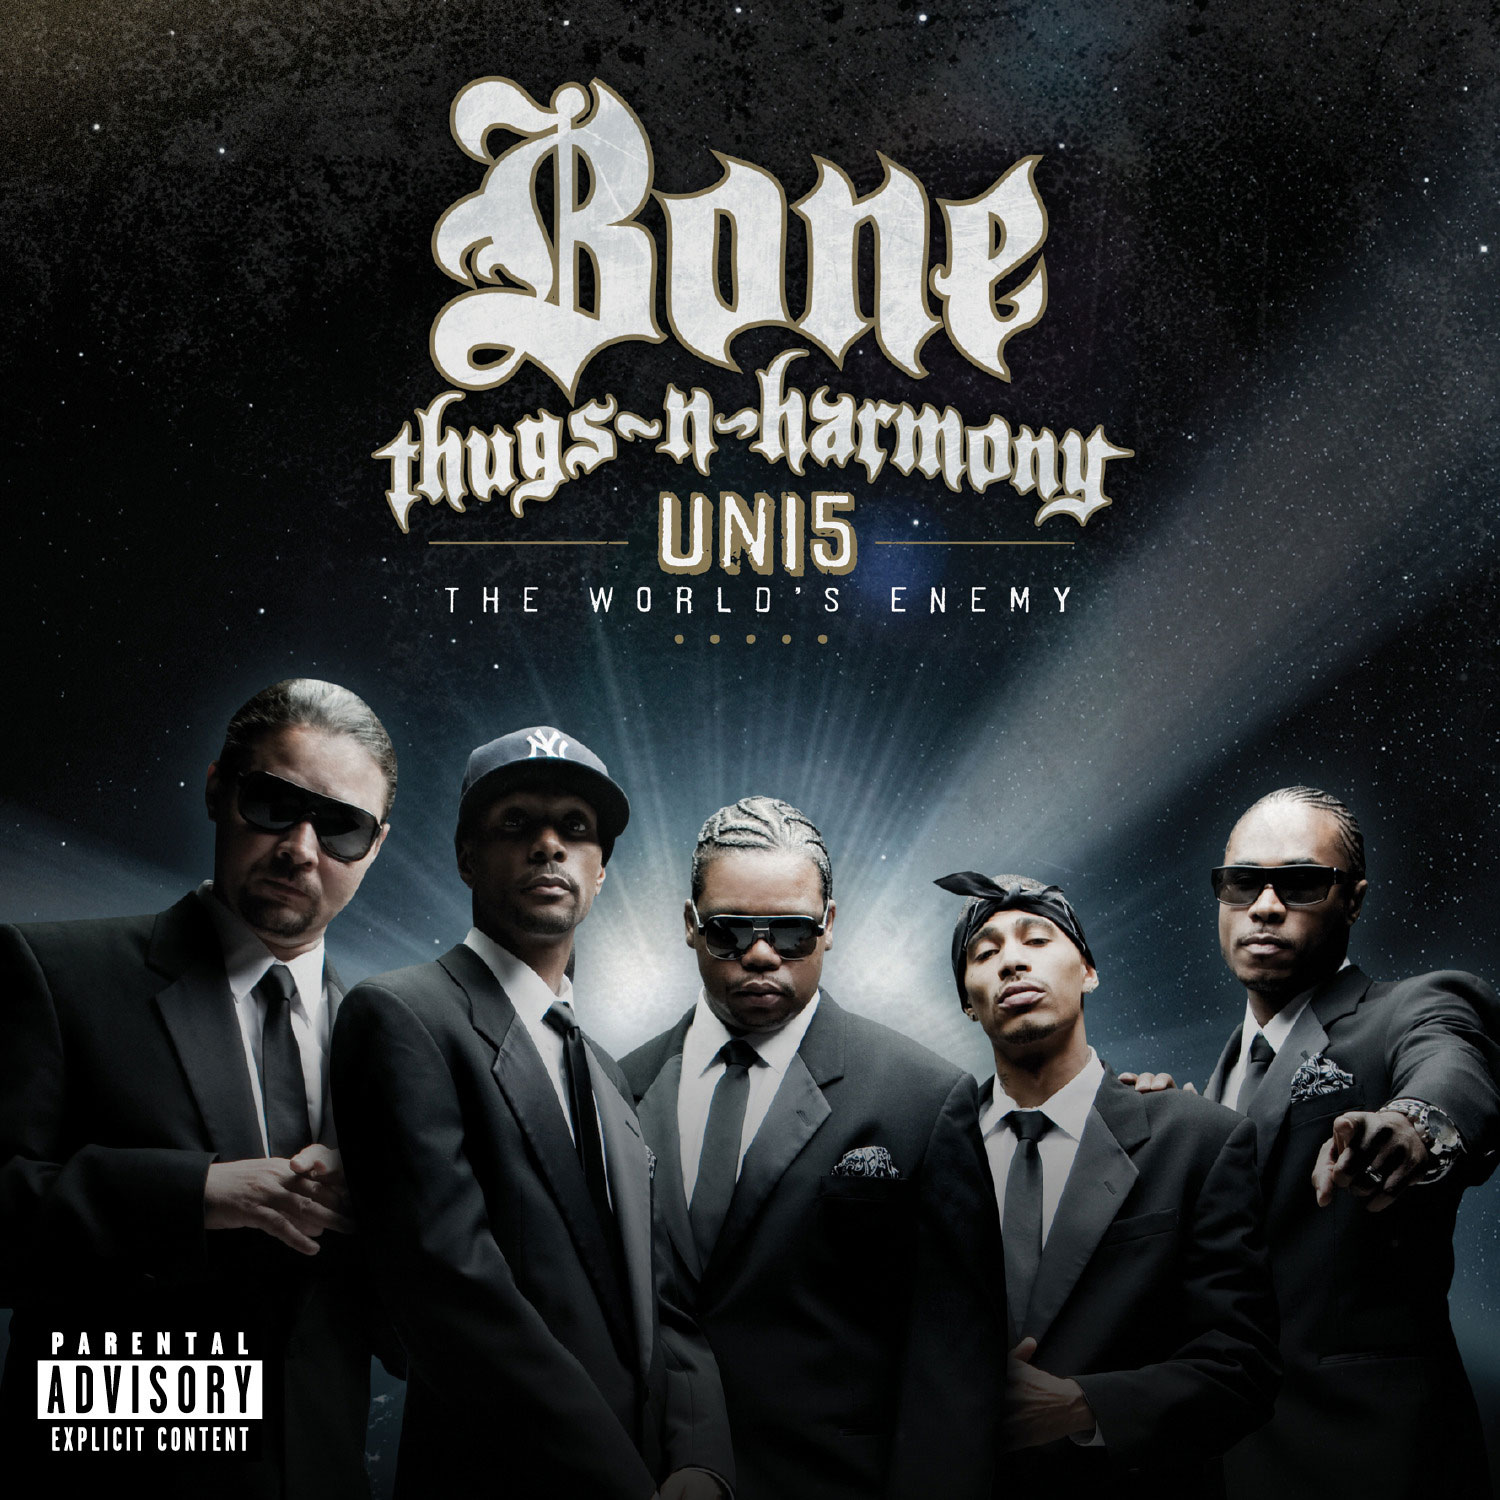 Artwork - Uni5: The World's Enemy by Bone Thugs-n-Harmony